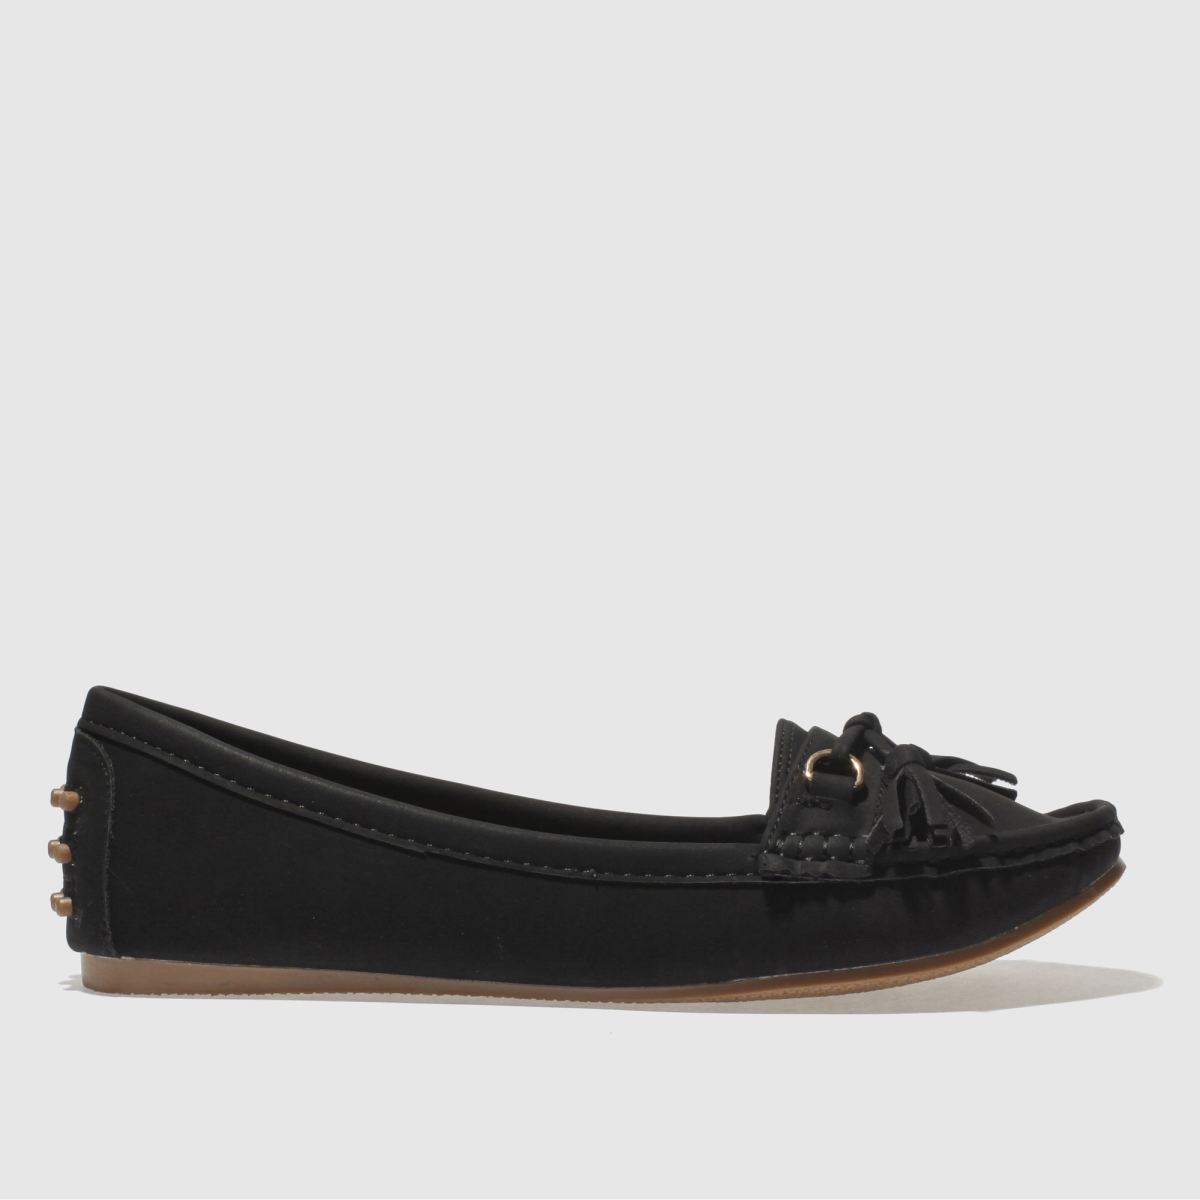 Schuh Black Preppy Flat Shoes